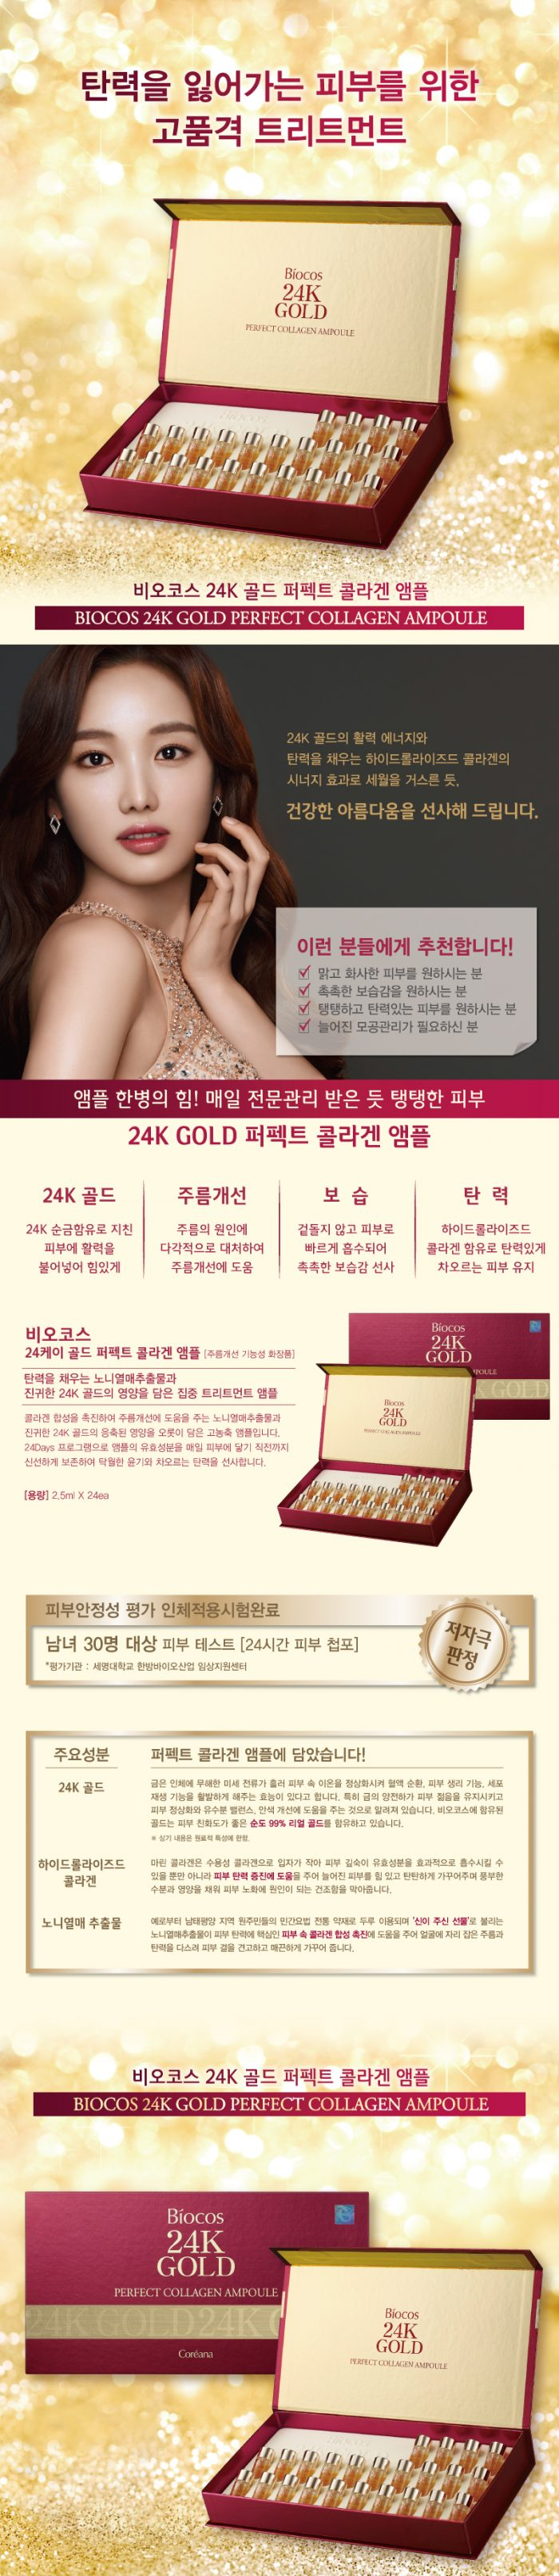 Tinh Chất Biocos 24k Gold Perfect Collagen Ampoule